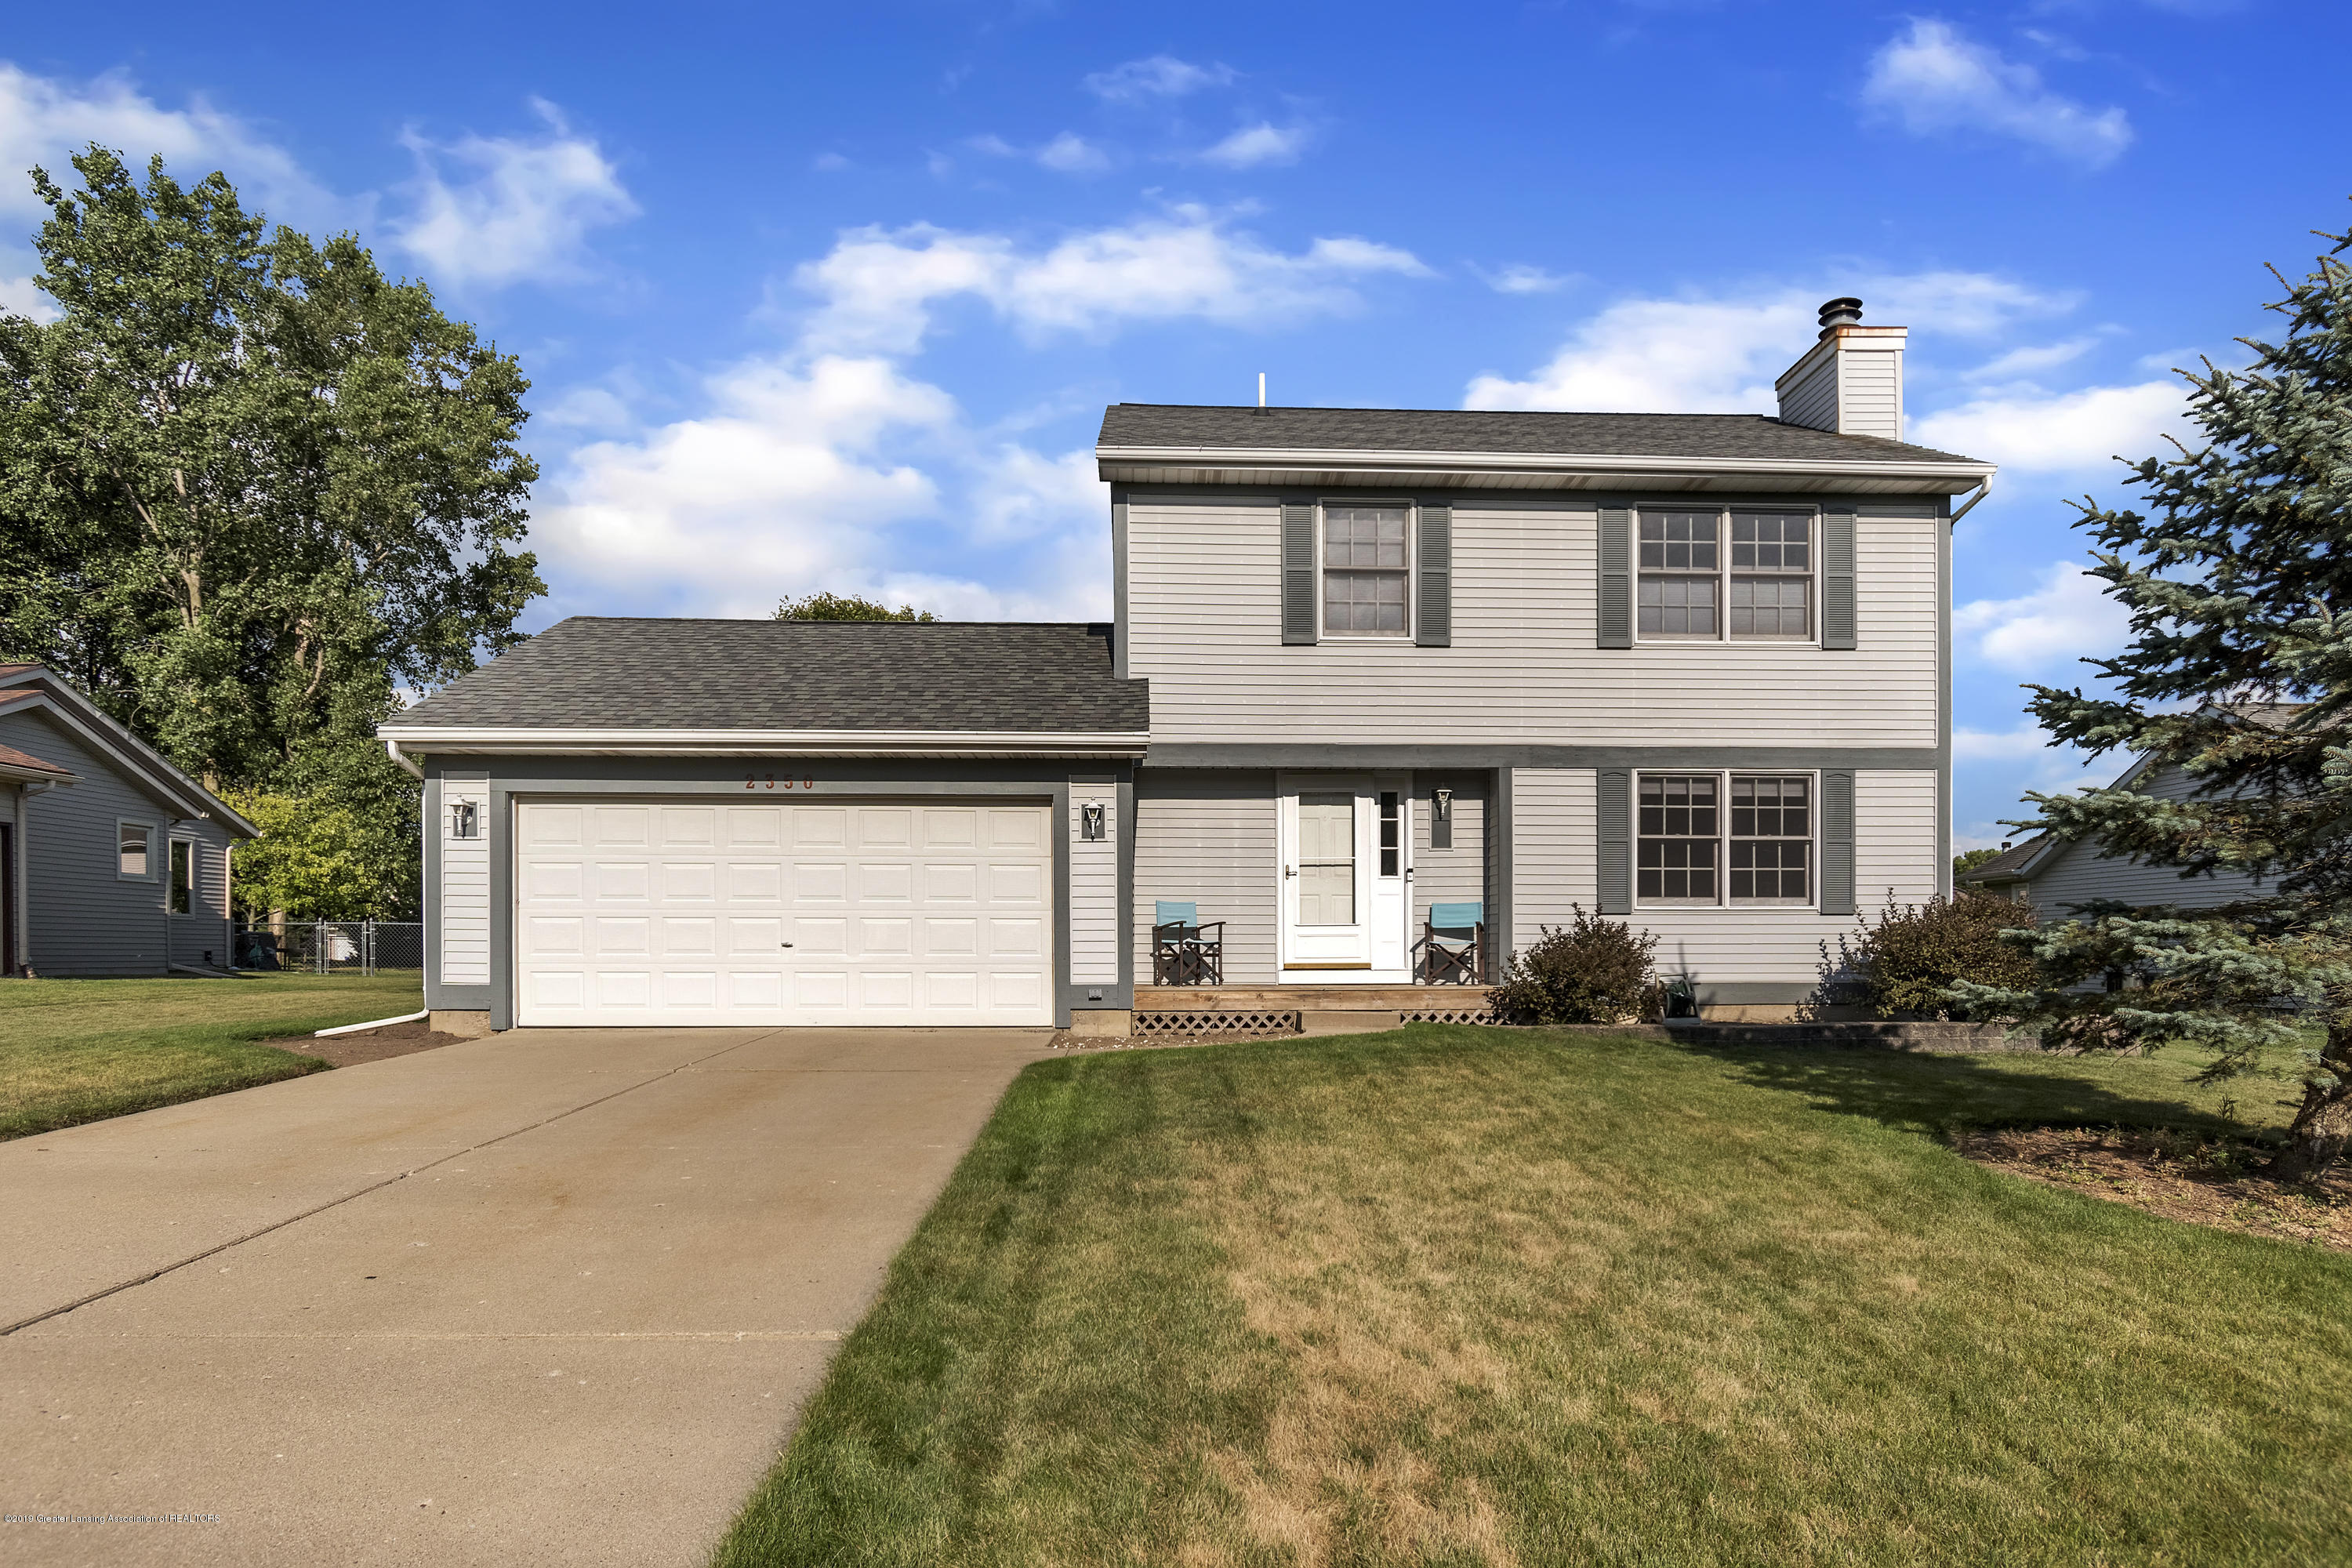 2350 Pine Tree Rd - 2350-Pine-Tree-Rd-Holt-MI-windowstill-3 - 2